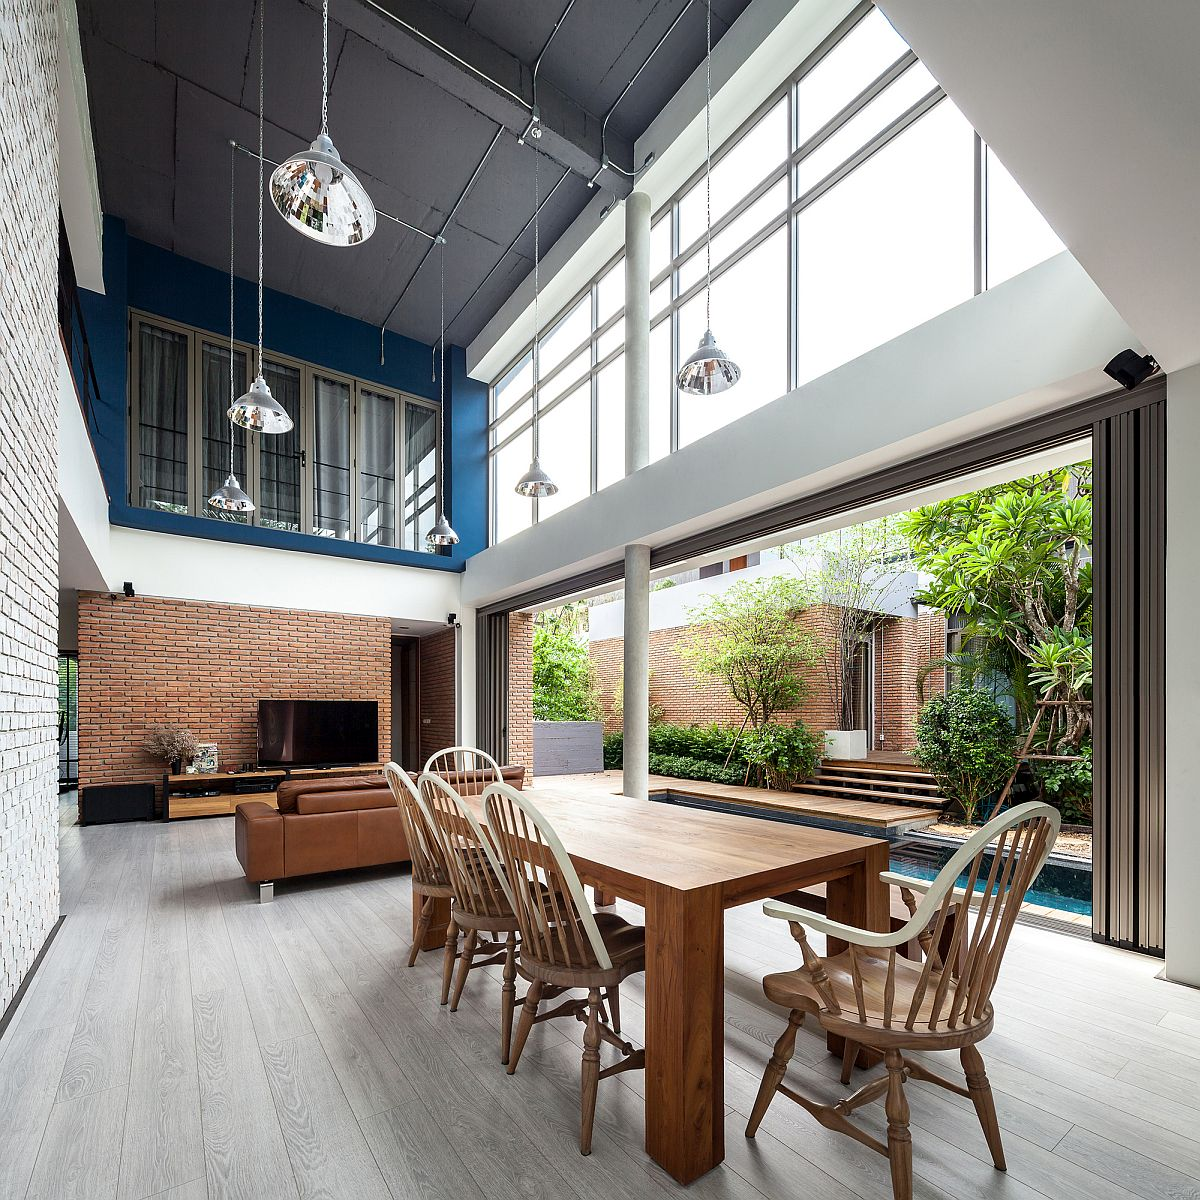 Charming open plan living in white and blue with brick walls all around